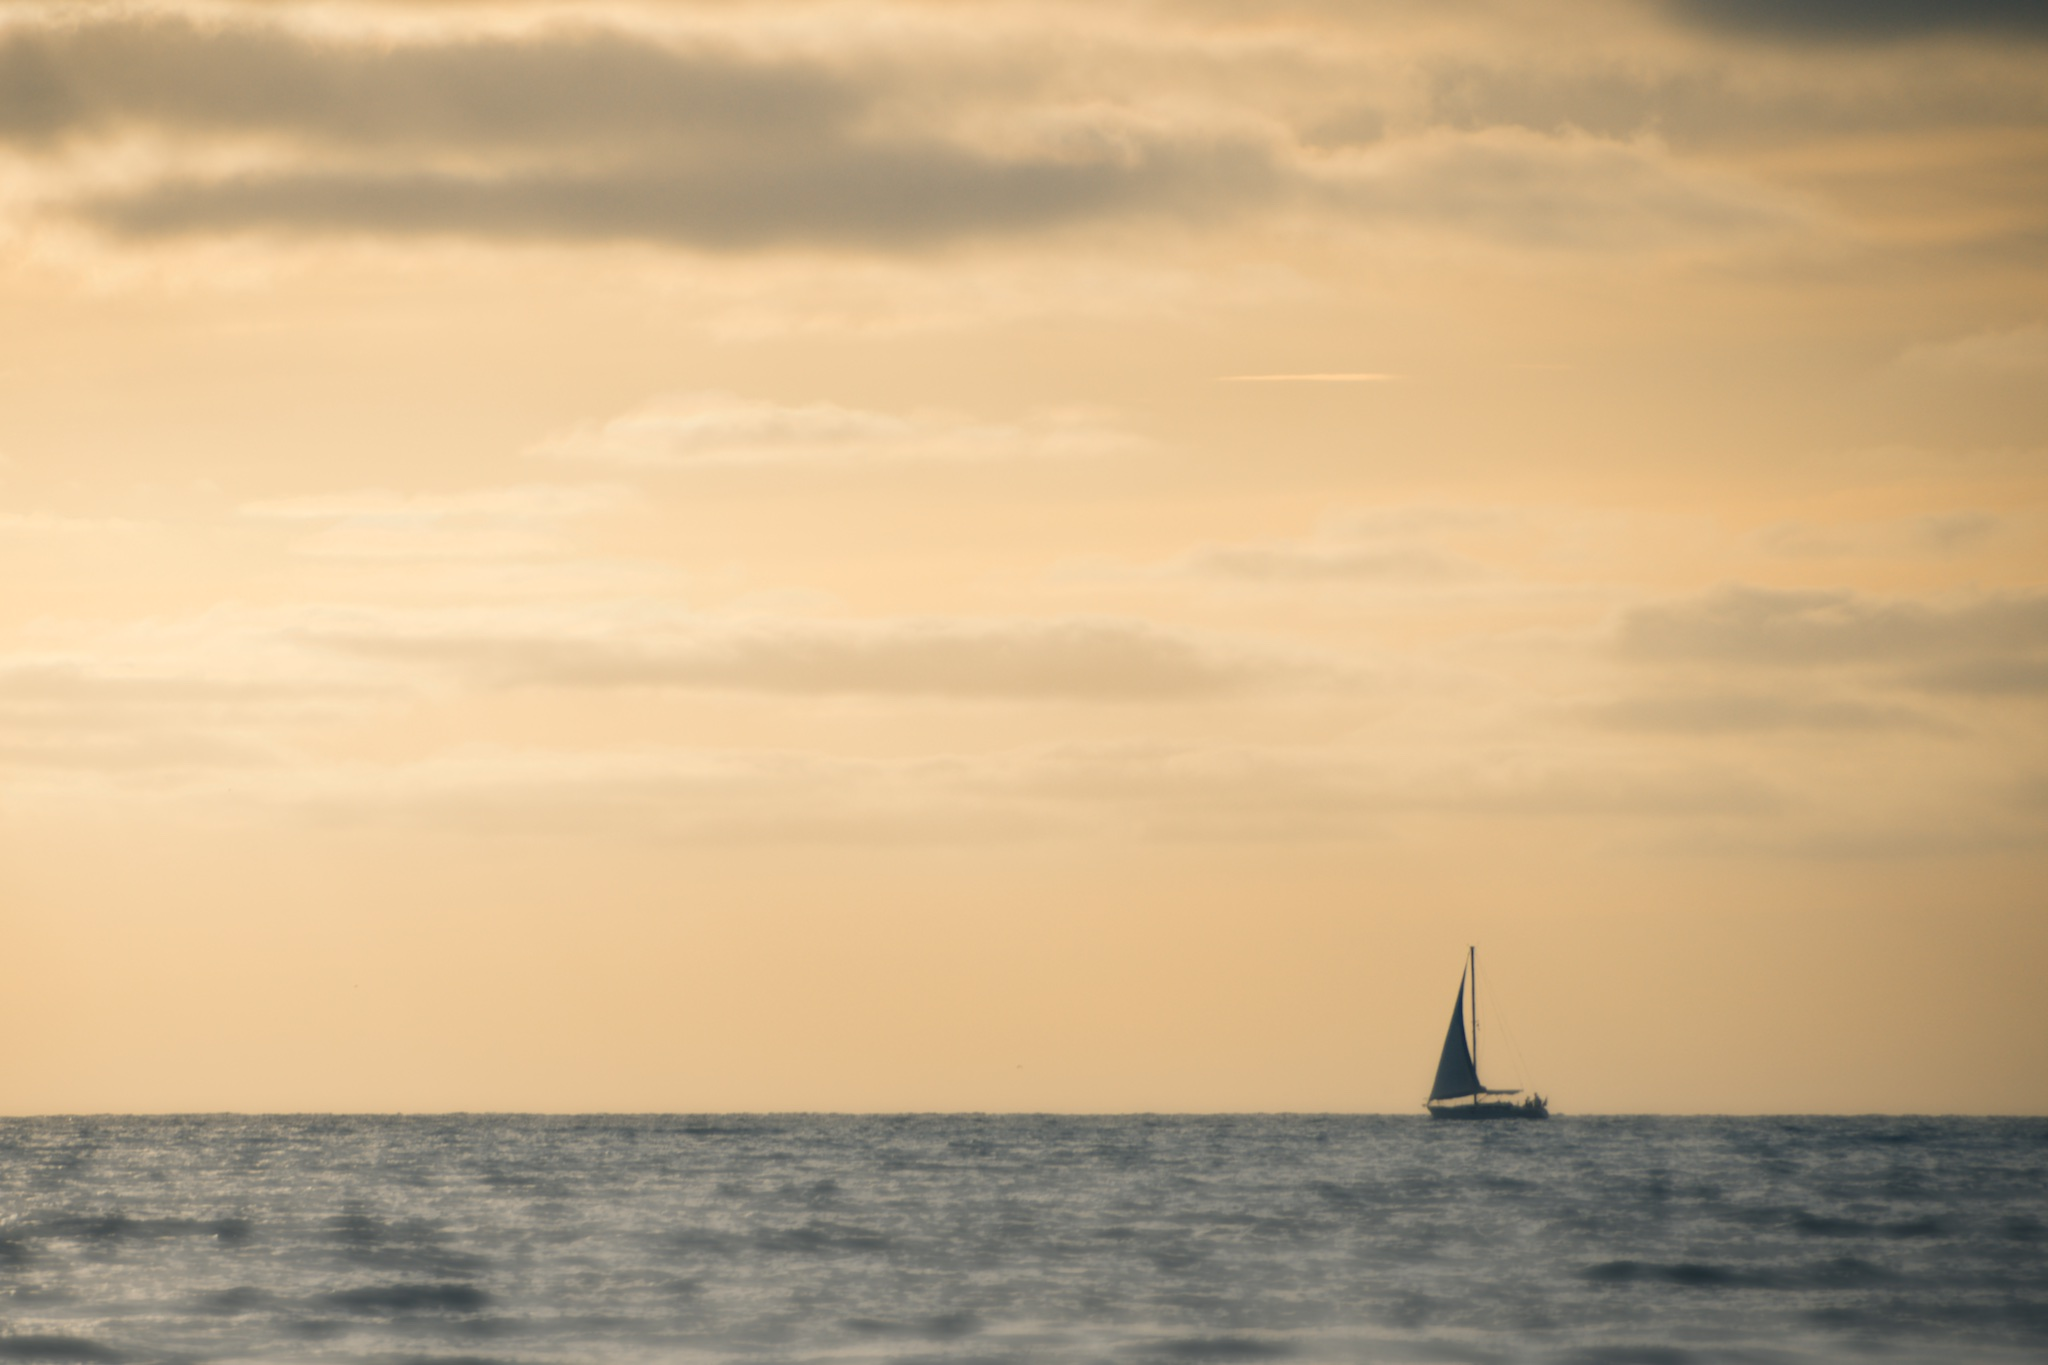 Sailing Into The Sunset